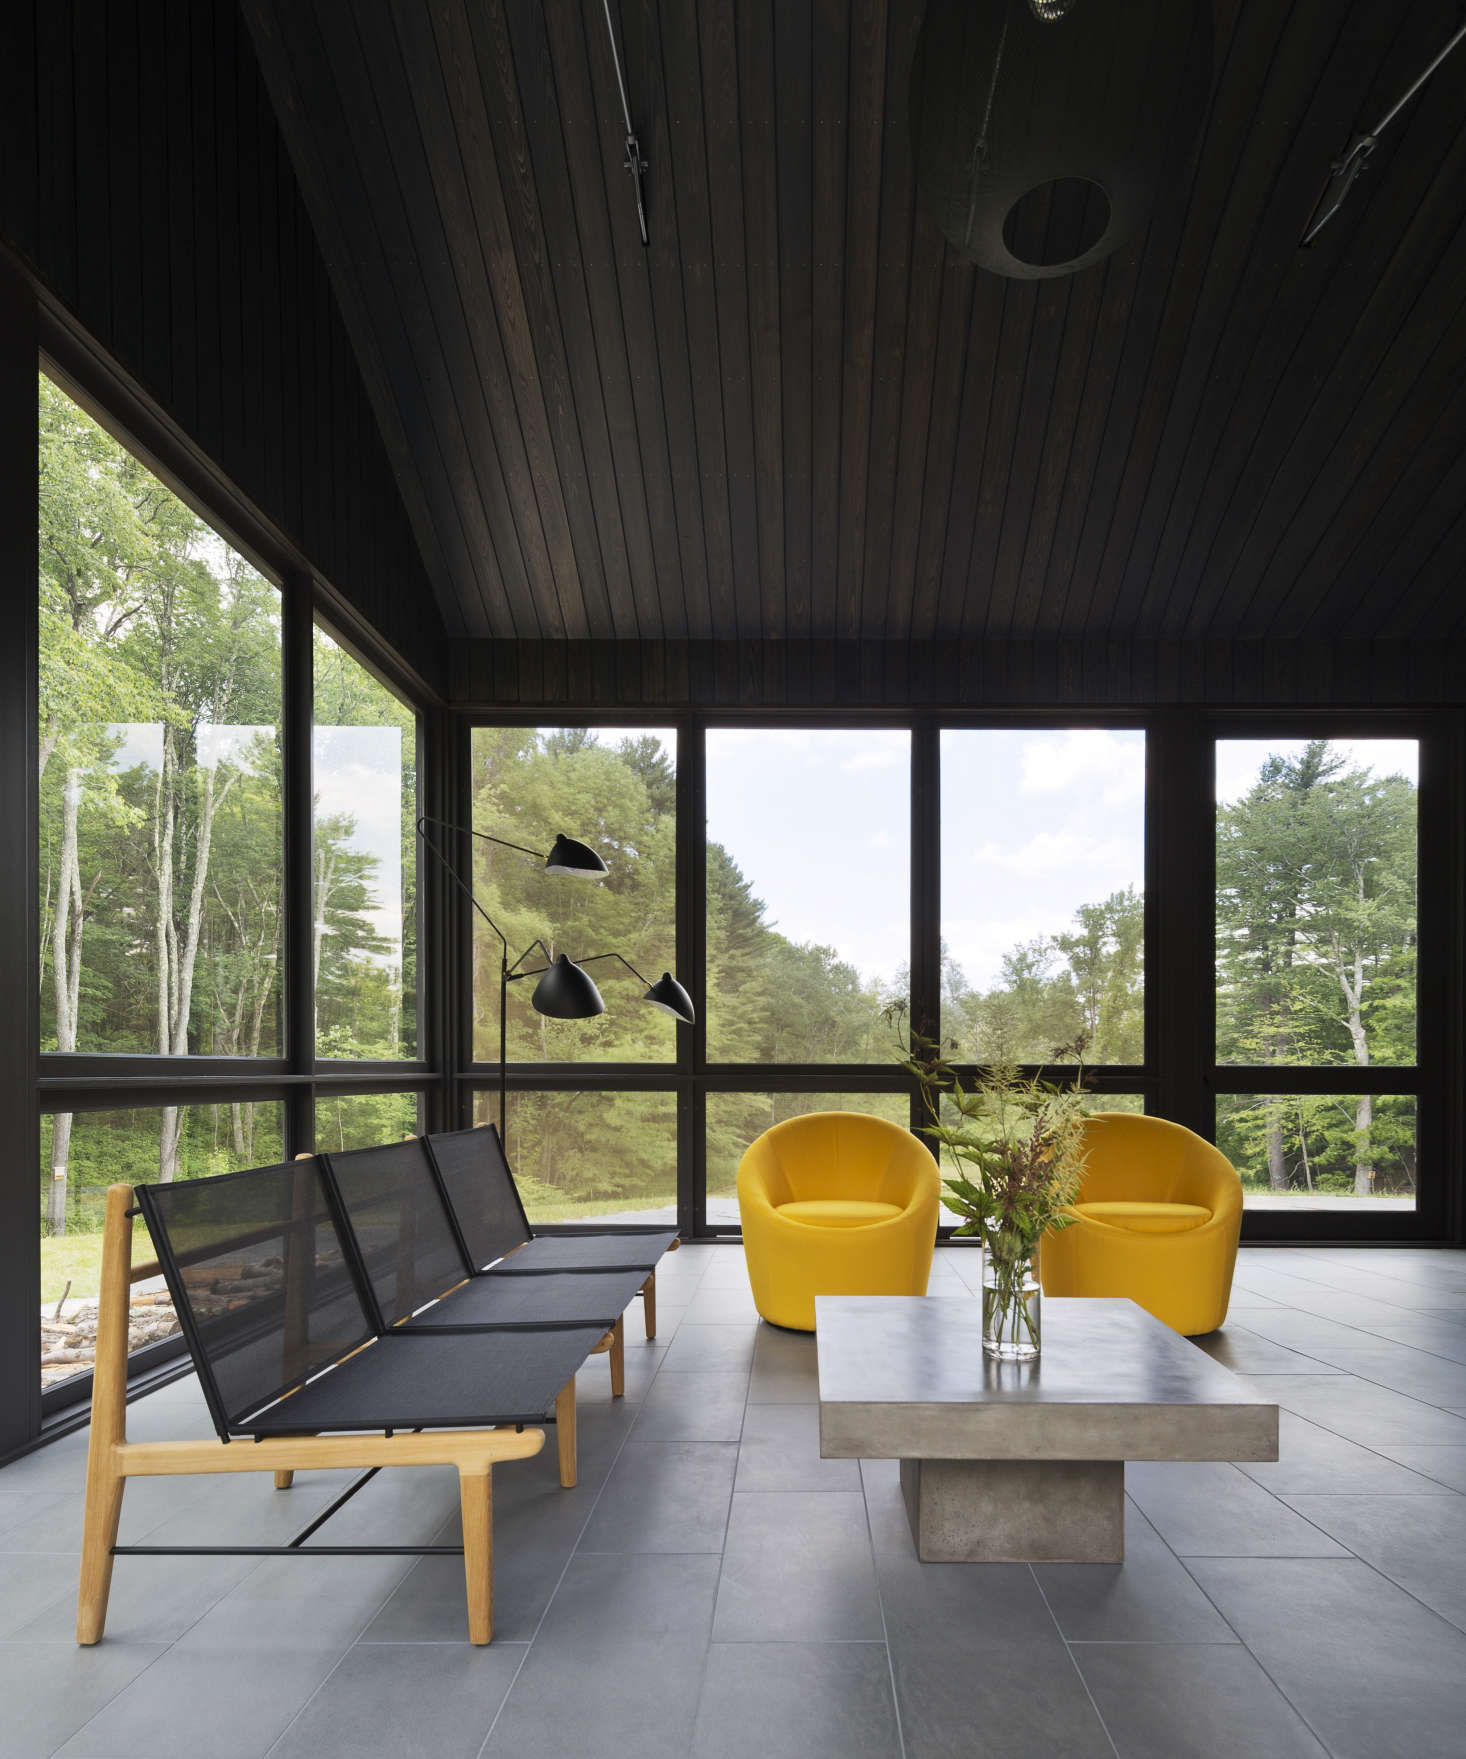 The porch at Undermountain, a barn-style house in the Berkshires by O'Neill Rose Architects